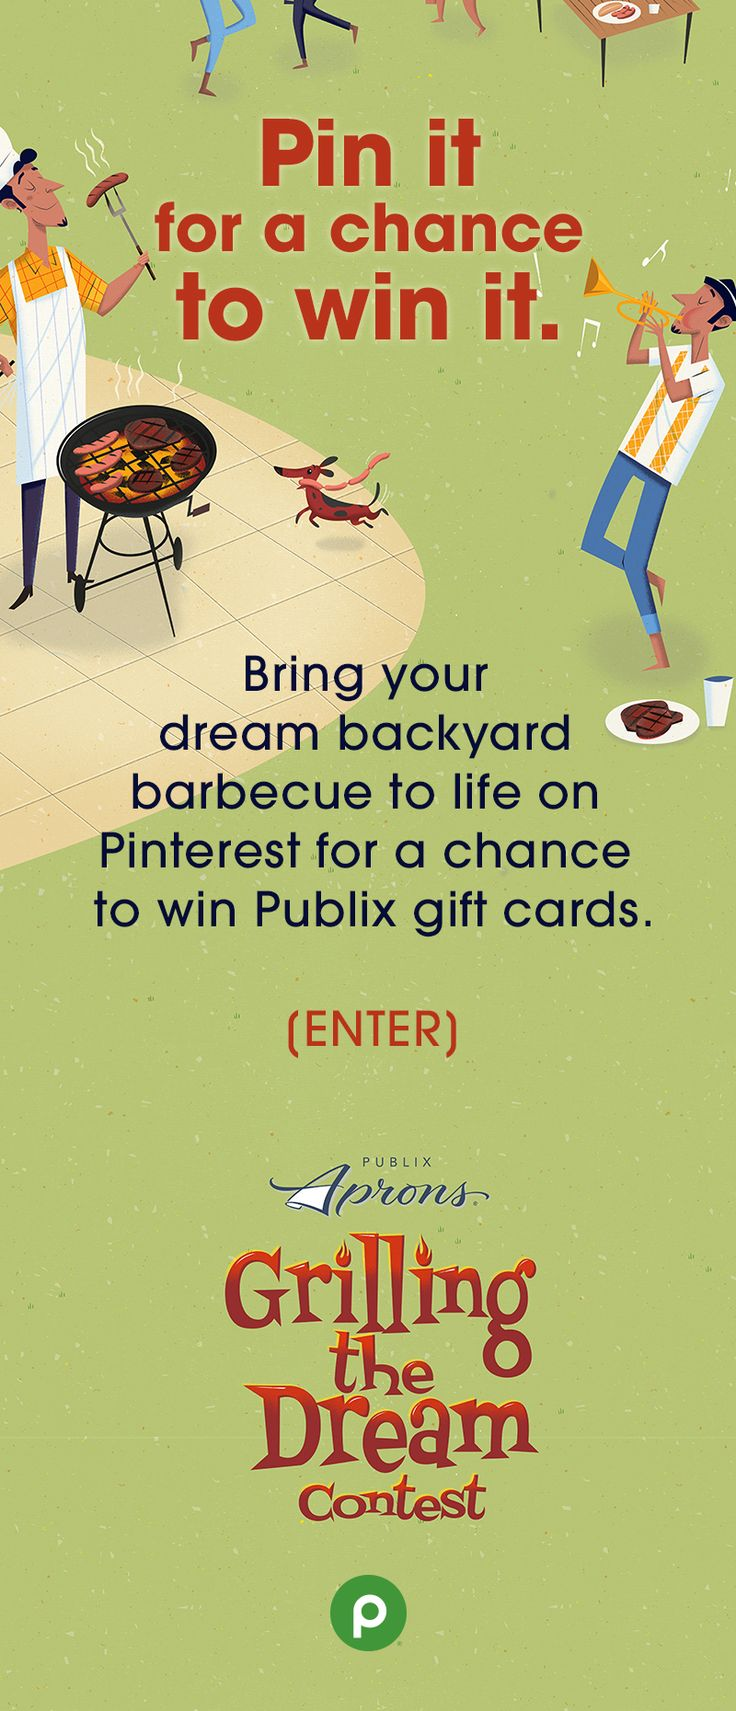 Create a board on Pinterest that has everything you've dreamed in a backyard barbecue—ideal foods, location, friends, music, or whatever you need to make your dream come true.  If your dream inspires our judges, you could be one of five $1,000 winners in Publix gift cards.  Boards will be judged on creativity, diversity of Pins, and level of Publix inspiration. Be sure to add #Contest to each Pin. Enter before July 27, 2016.  For official rules, visit publix.com/grillingthedream